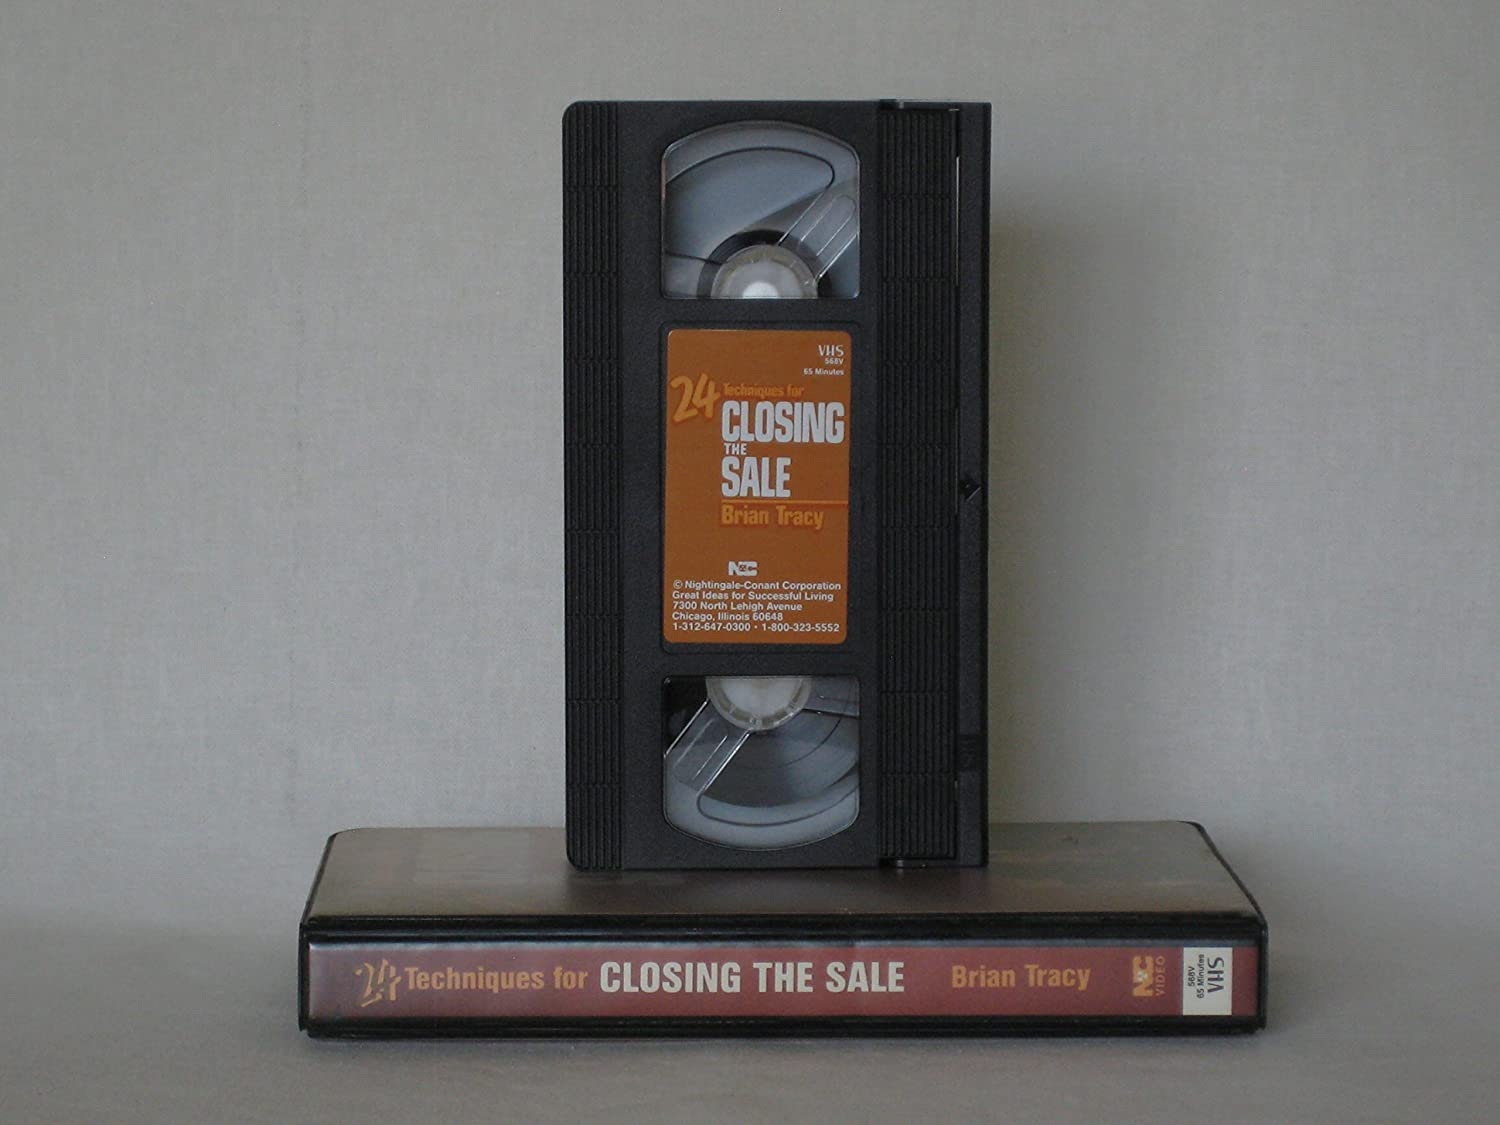 24 techniques for closing the sale vhs